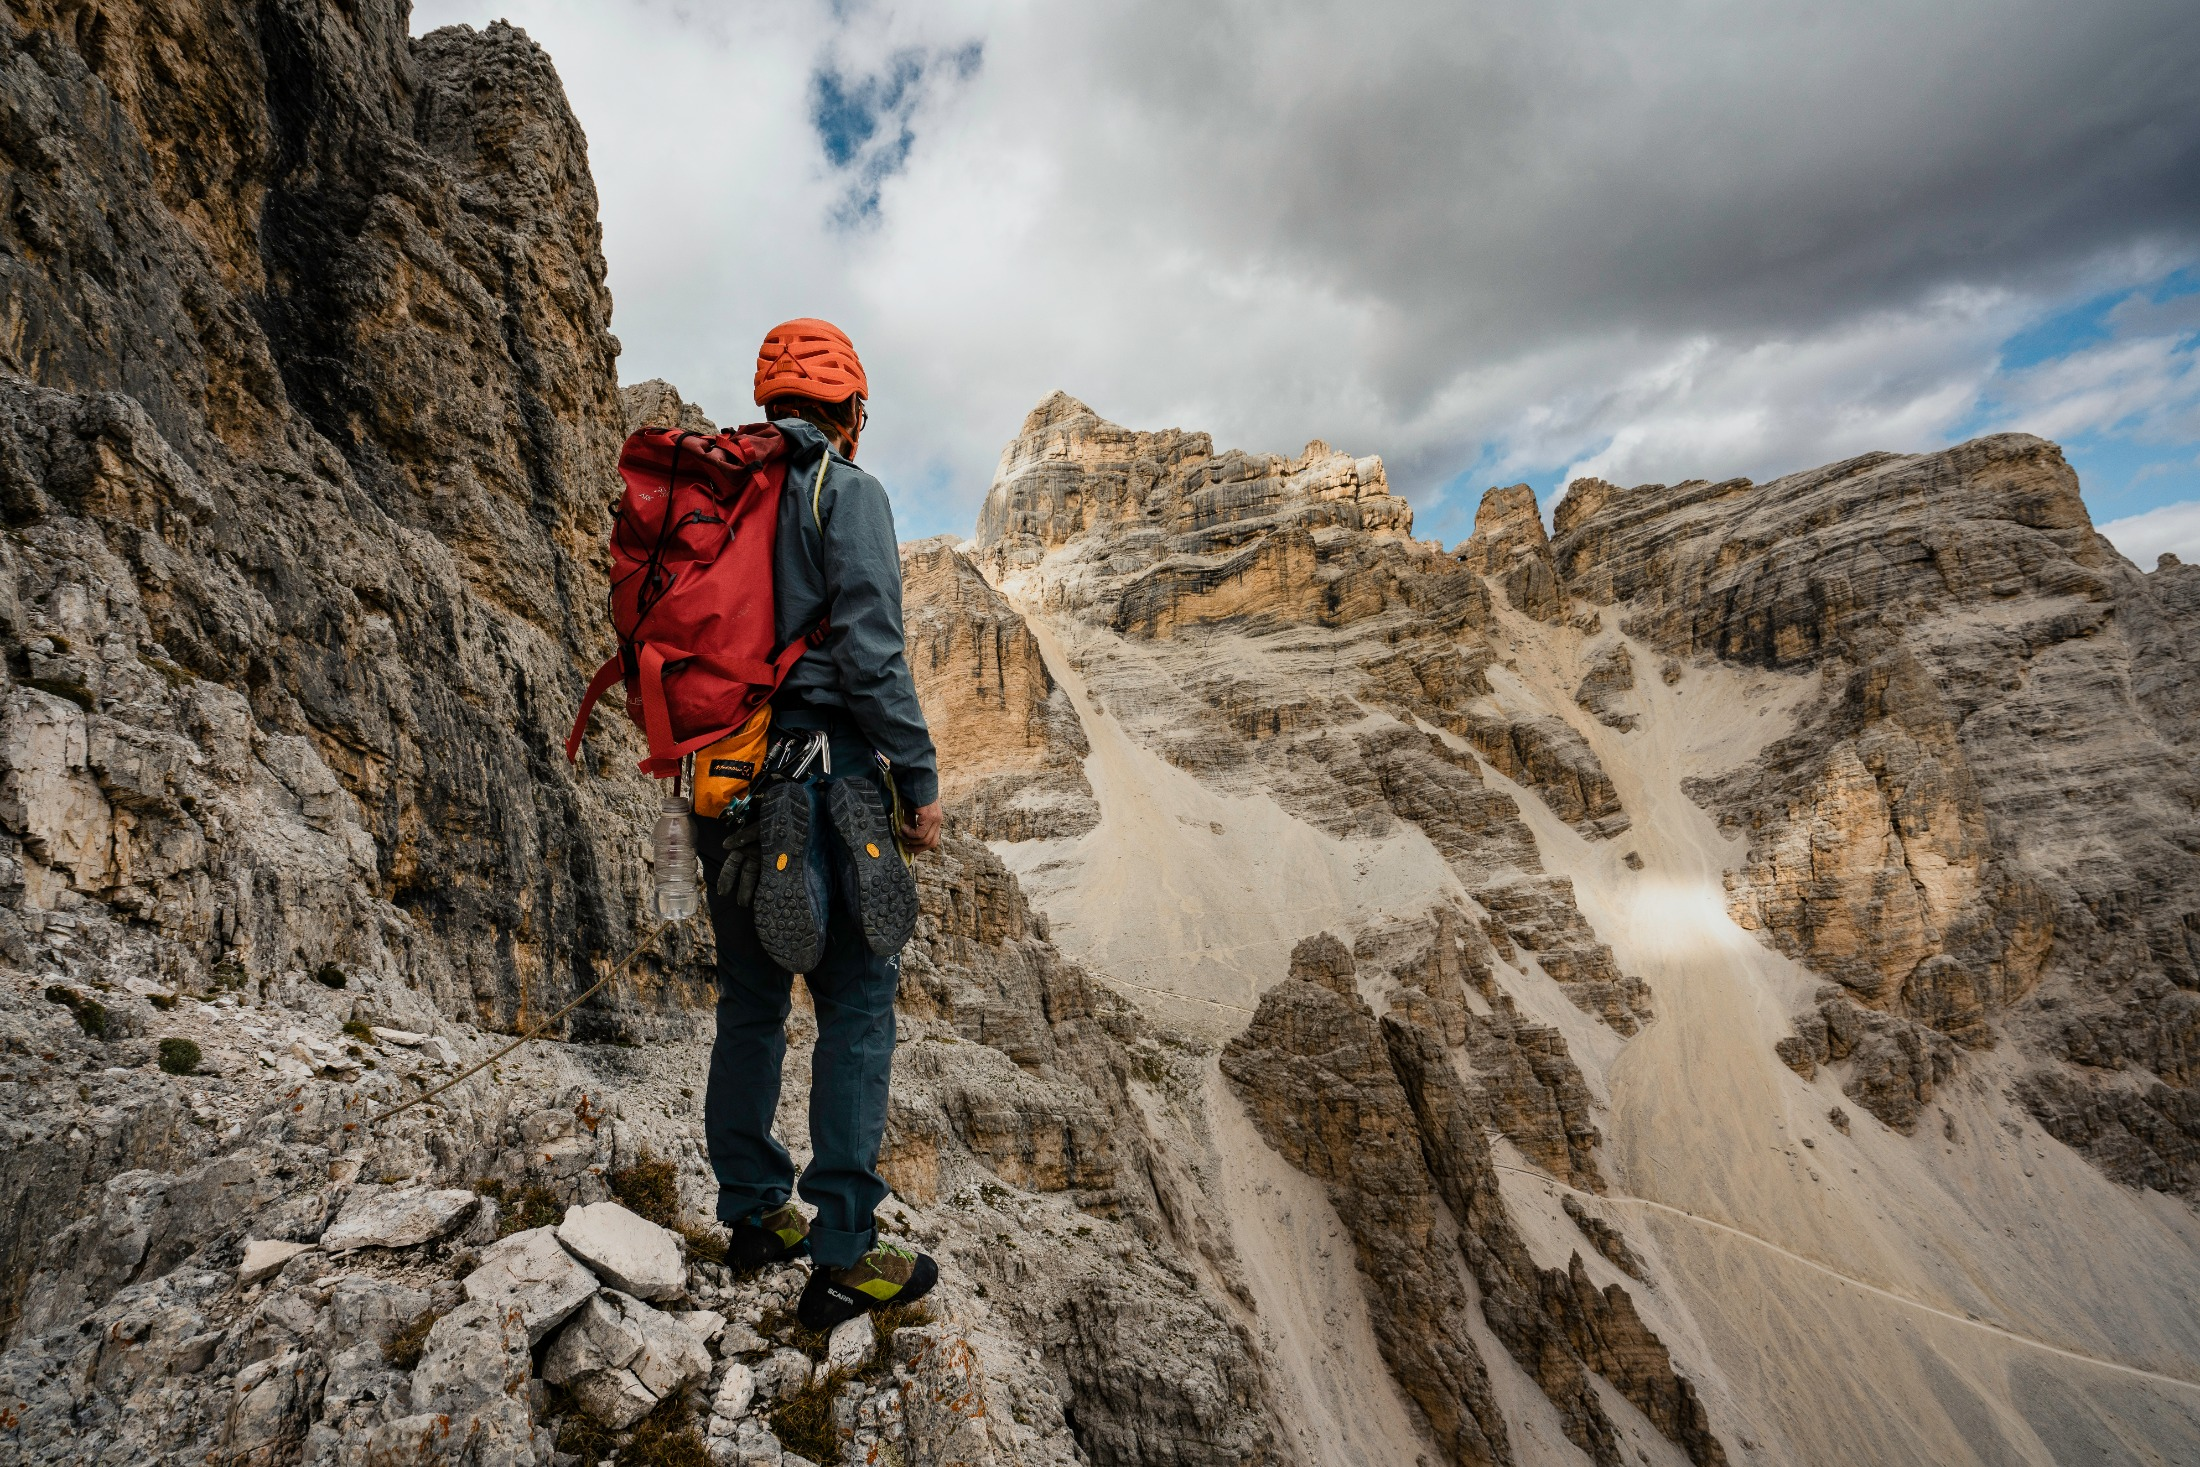 Guided trek through the Dolomites in Italy.